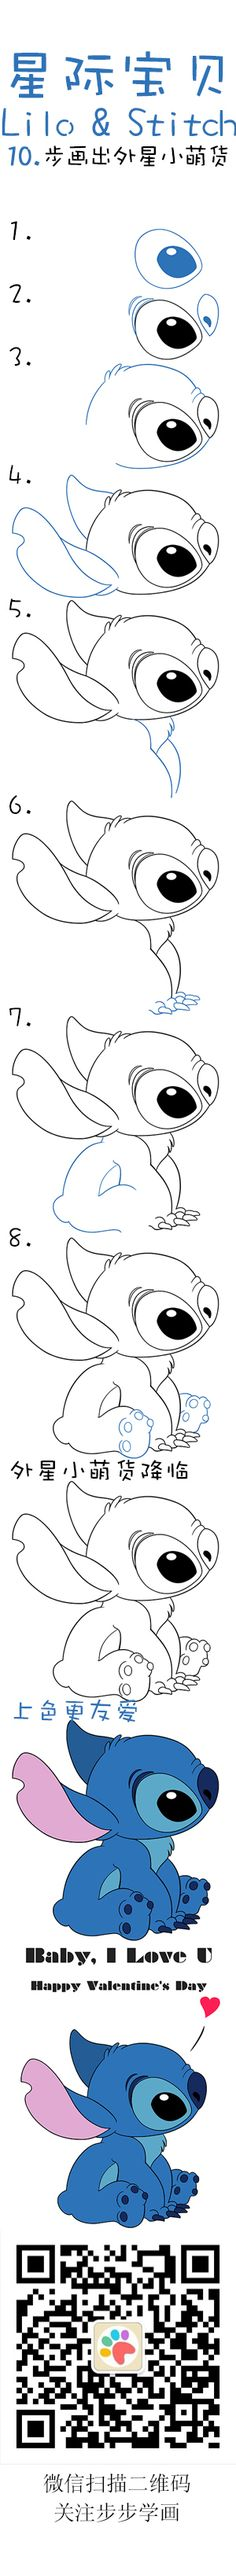 How to draw Stitch! So cute!